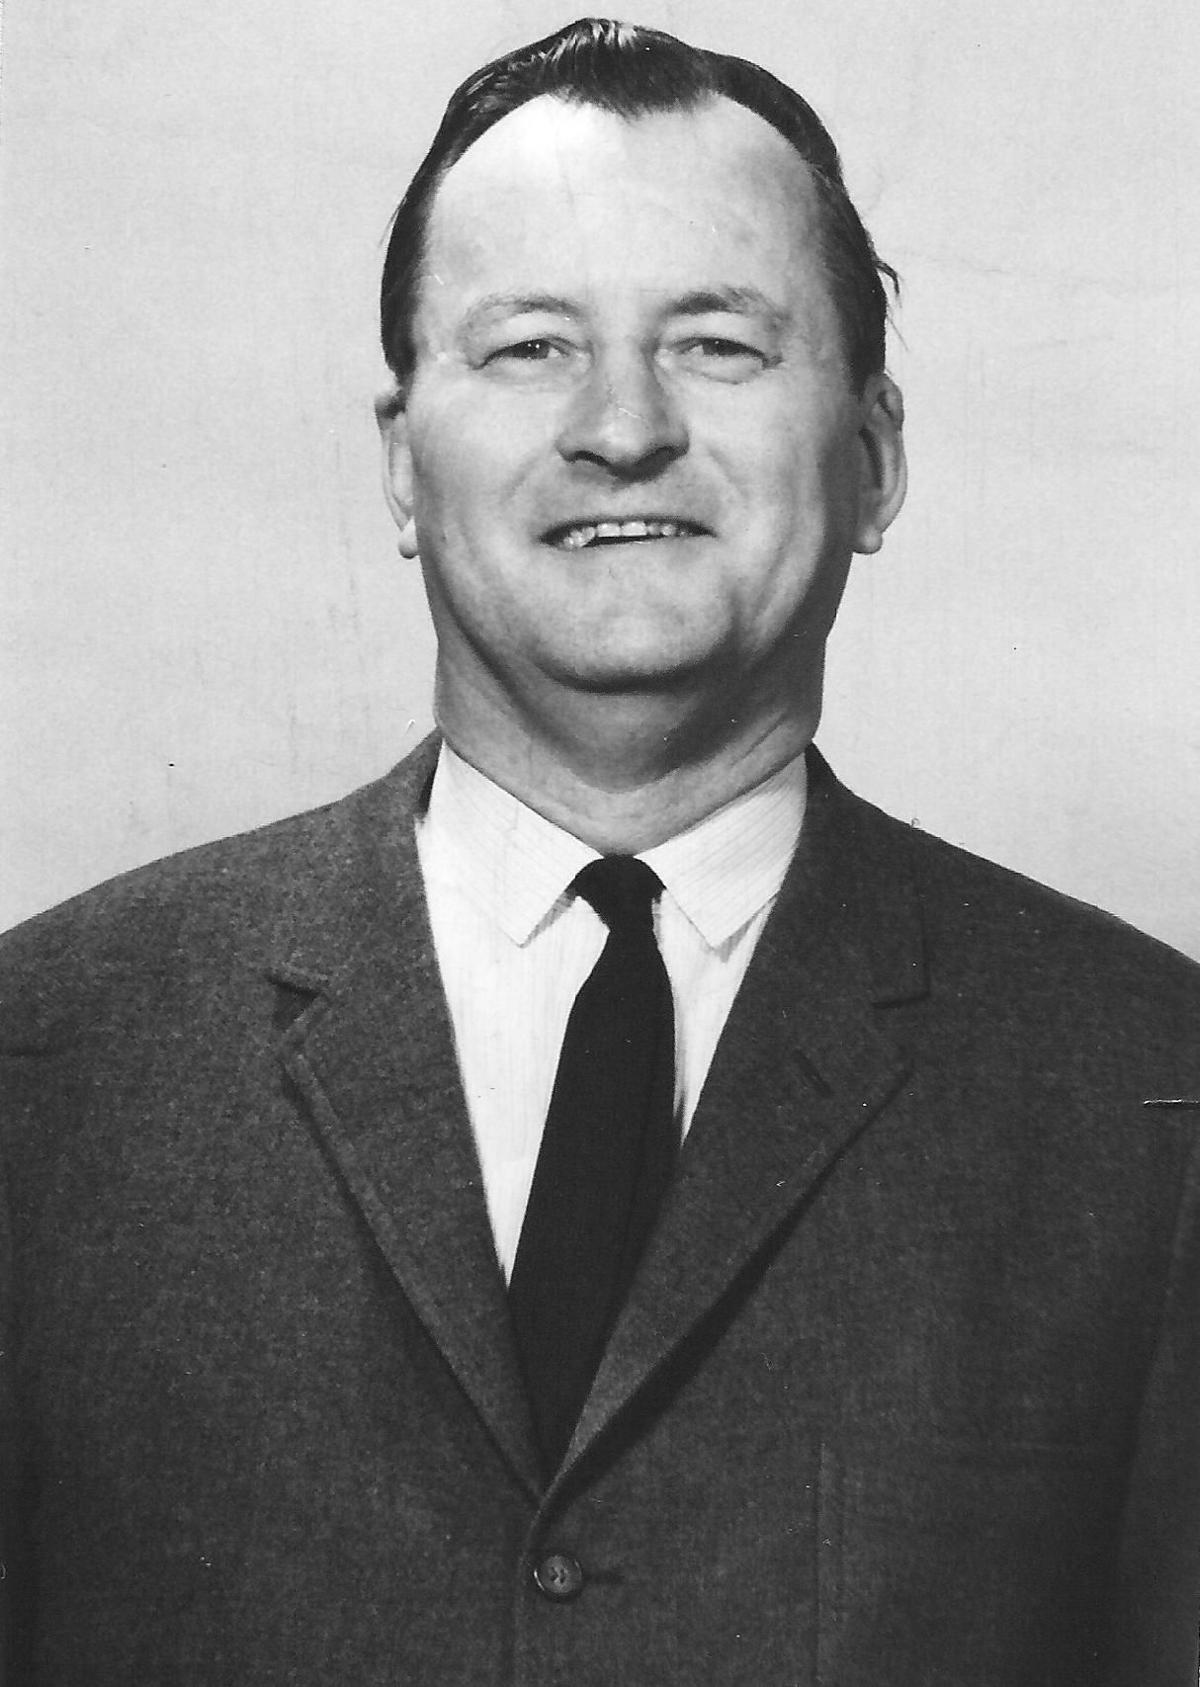 1954 picture of Ohio Valley Bus Company's President, Leonard Samworth.